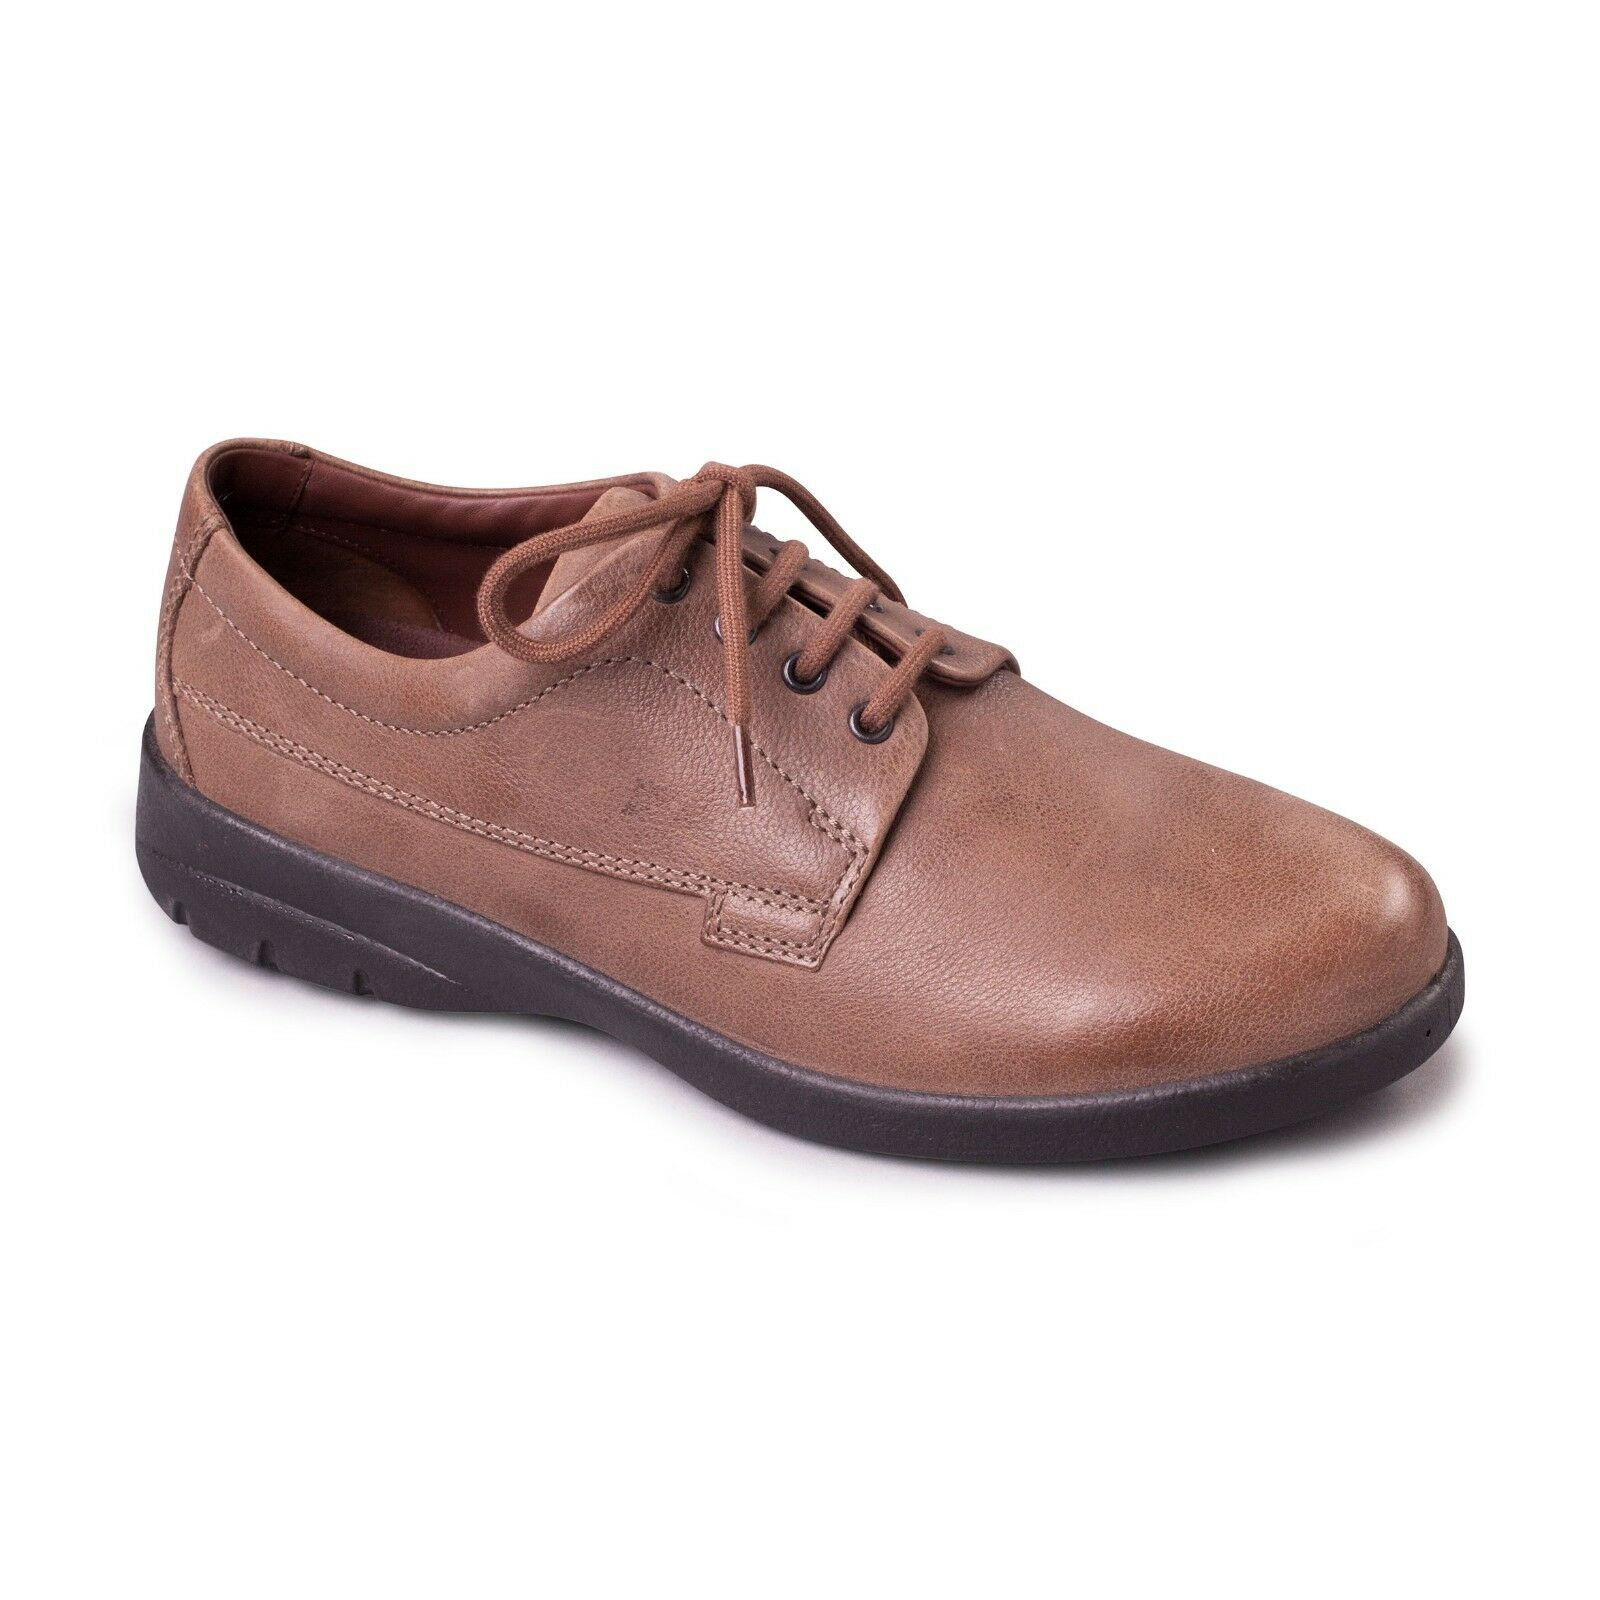 Padders Mens Lunar Leather Wide G H Fitting Comfort Casual Tie Up shoes Taupe